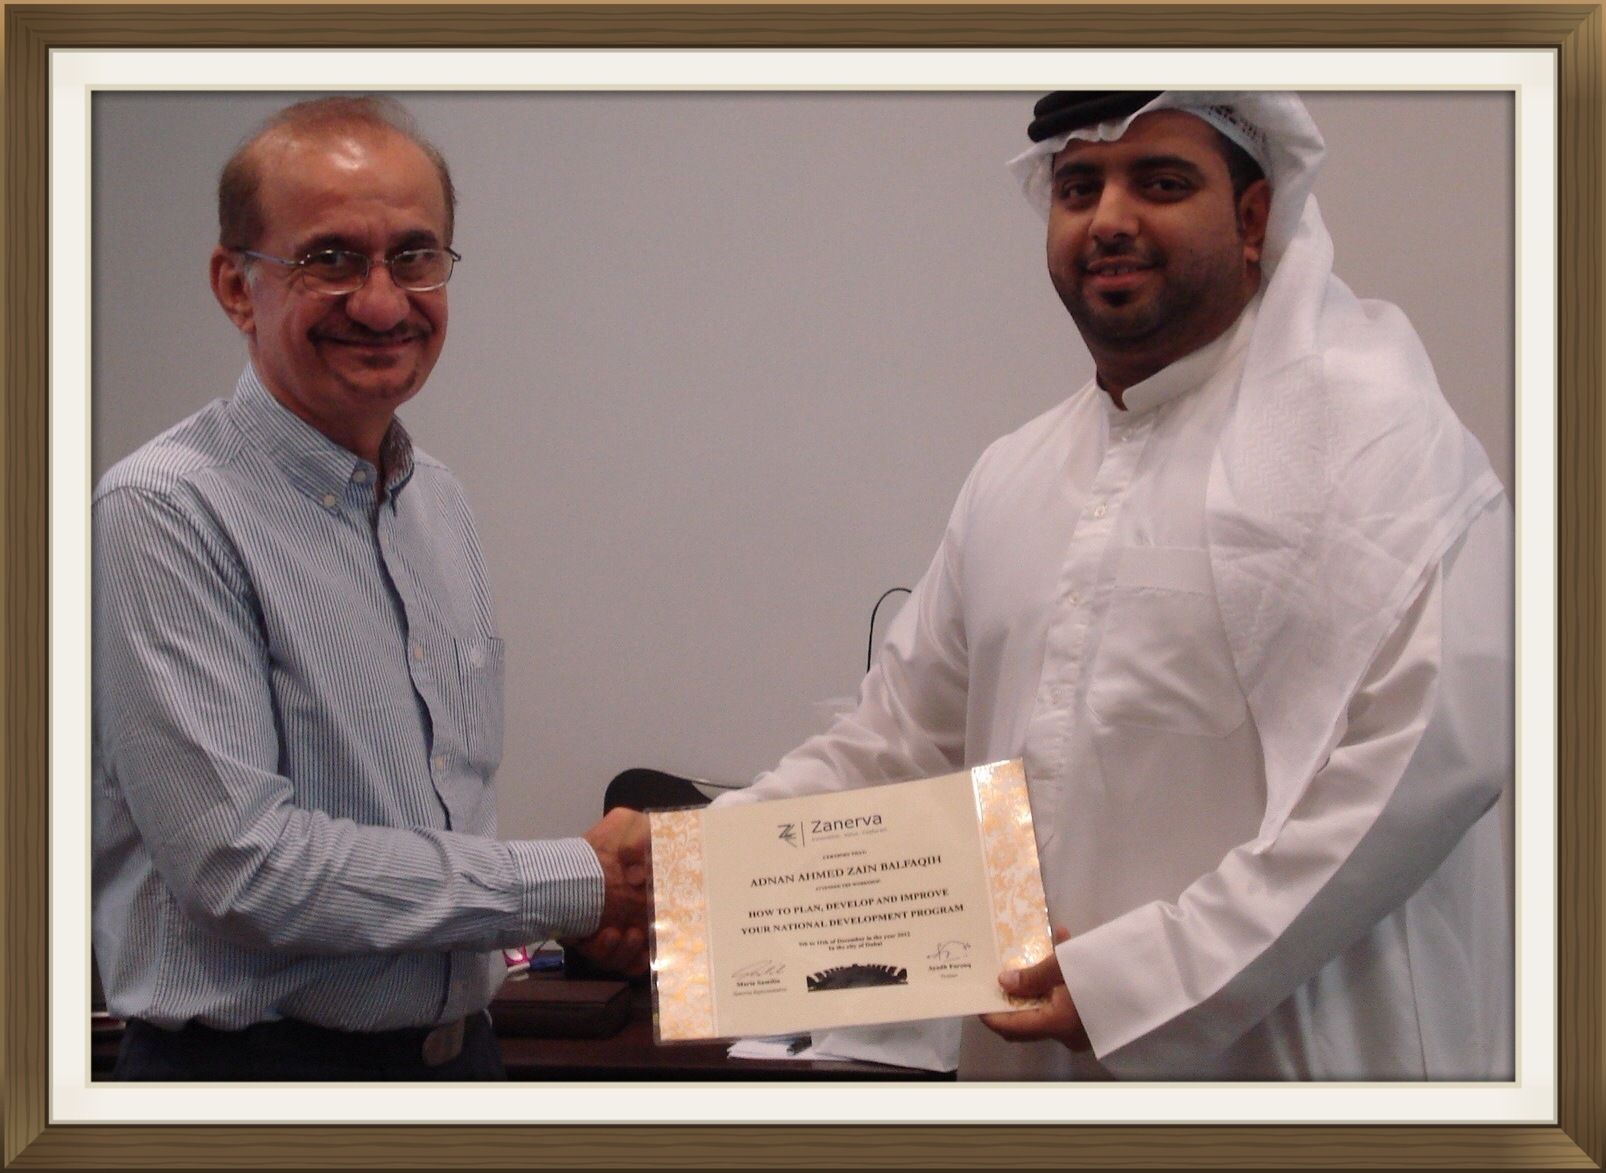 "Adnan Ahmed Zain Balfaqih - HR Superintendent at National Petroleum Construction Company UAE receiving his certificate of workshop participation from Ayadh Farooq during the ""How to Improve Your National Development Program Workshop"" held in Dubai"